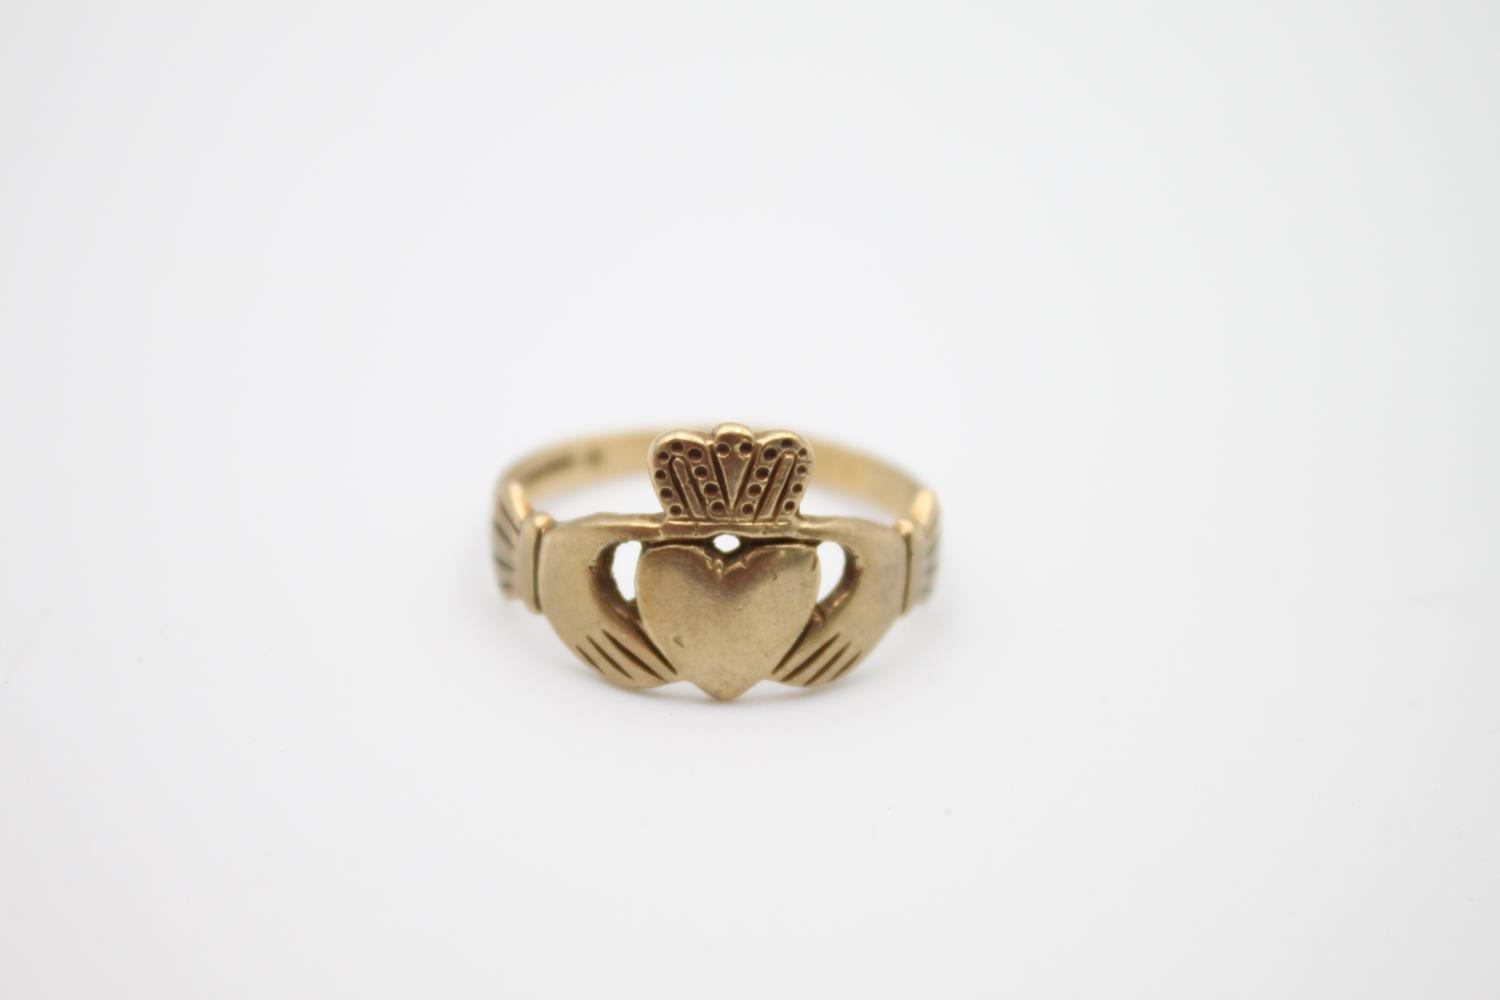 2 x 9ct gold Claddagh rings 4.1g Size K & O - Image 2 of 5